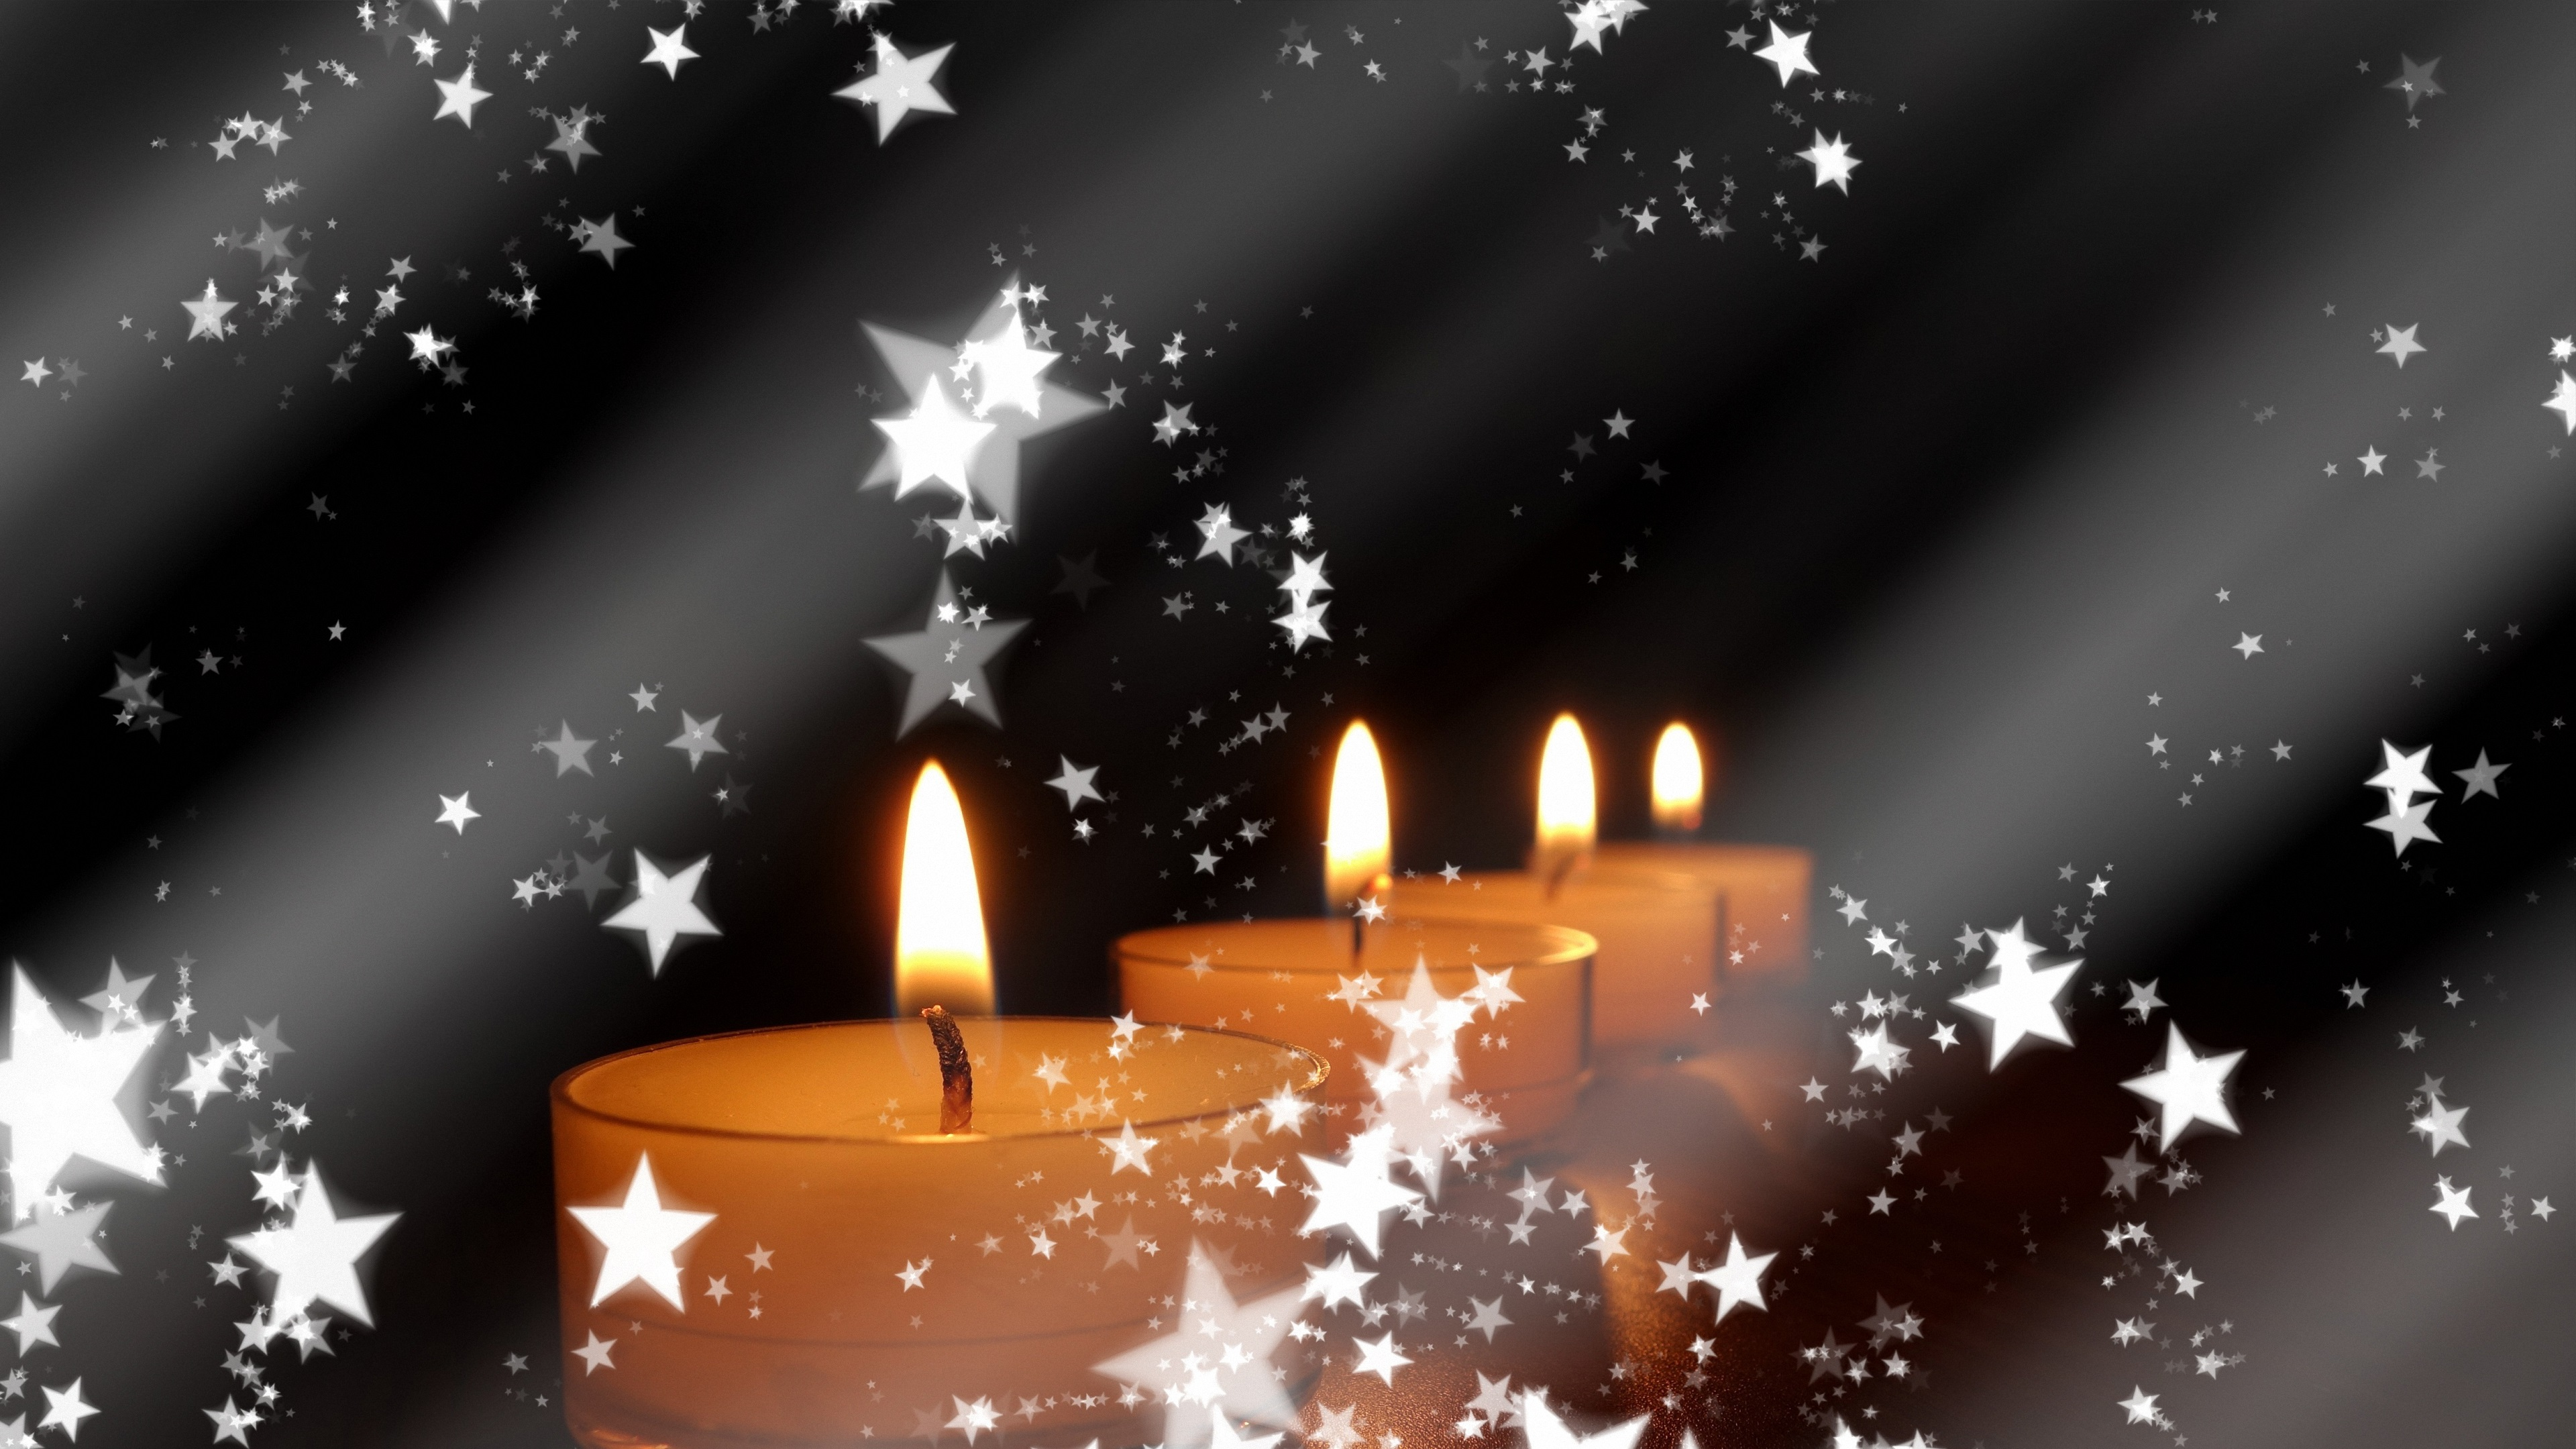 Weihnachtsbilder Zum 2 Advent.Wallpaper Pc Advent 3840x2160